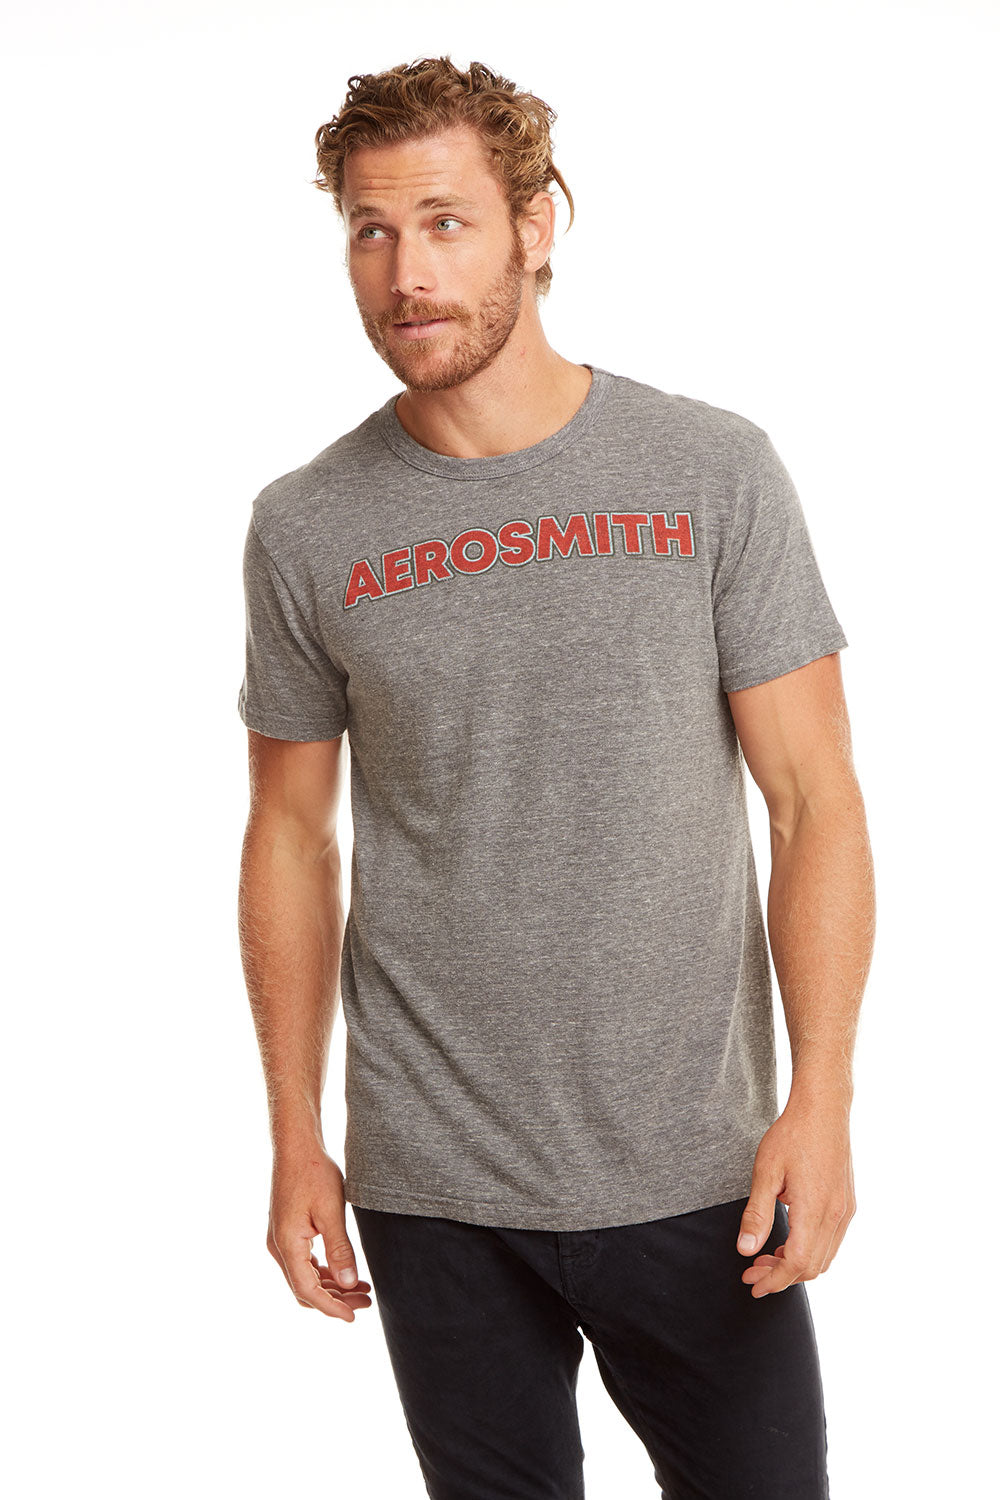 Aerosmith - Aerosmith, MENS, chaserbrand.com,chaser clothing,chaser apparel,chaser los angeles